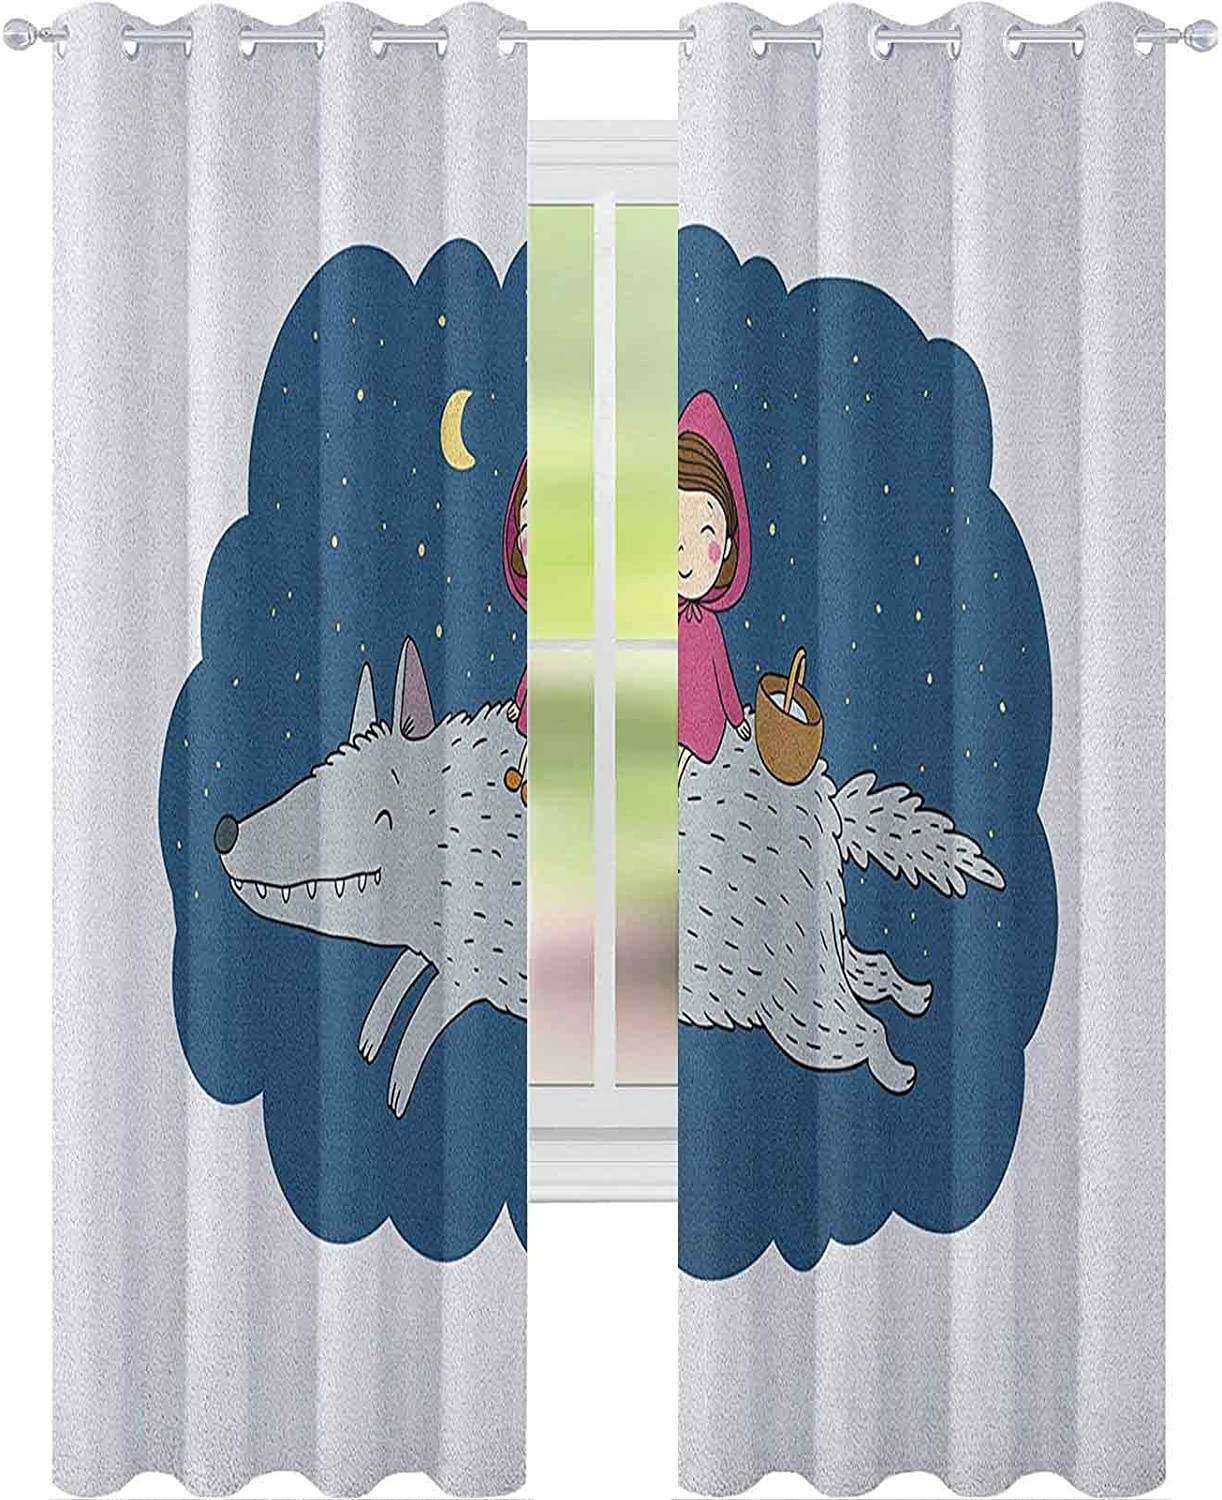 safety Curtains Ranking TOP11 Cartoon Kid in a Pink Hood and Basket on Wolf Giant R